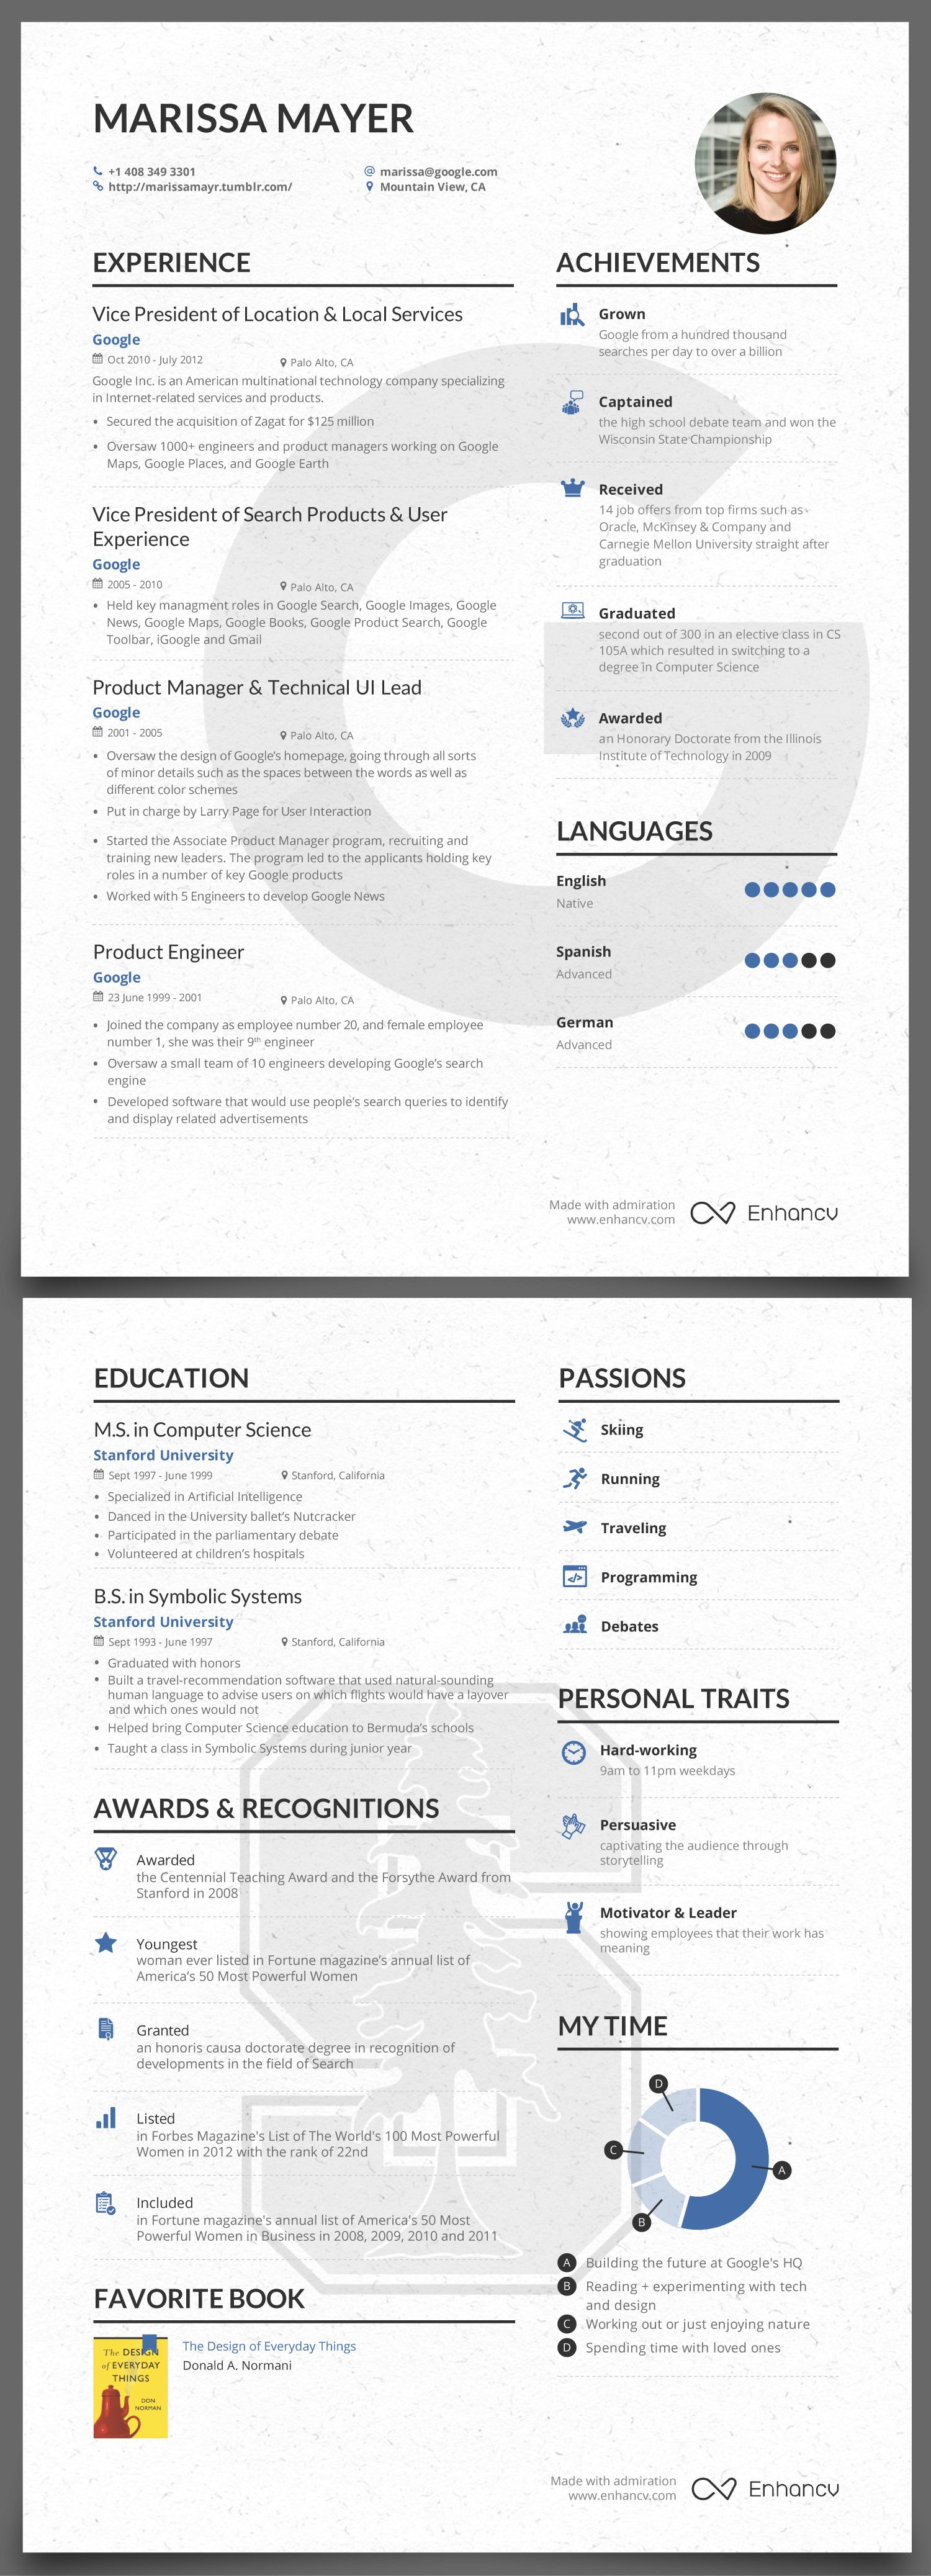 Marissa Mayer Resume Template Download - Michele Pilato Miga73 On Pinterest